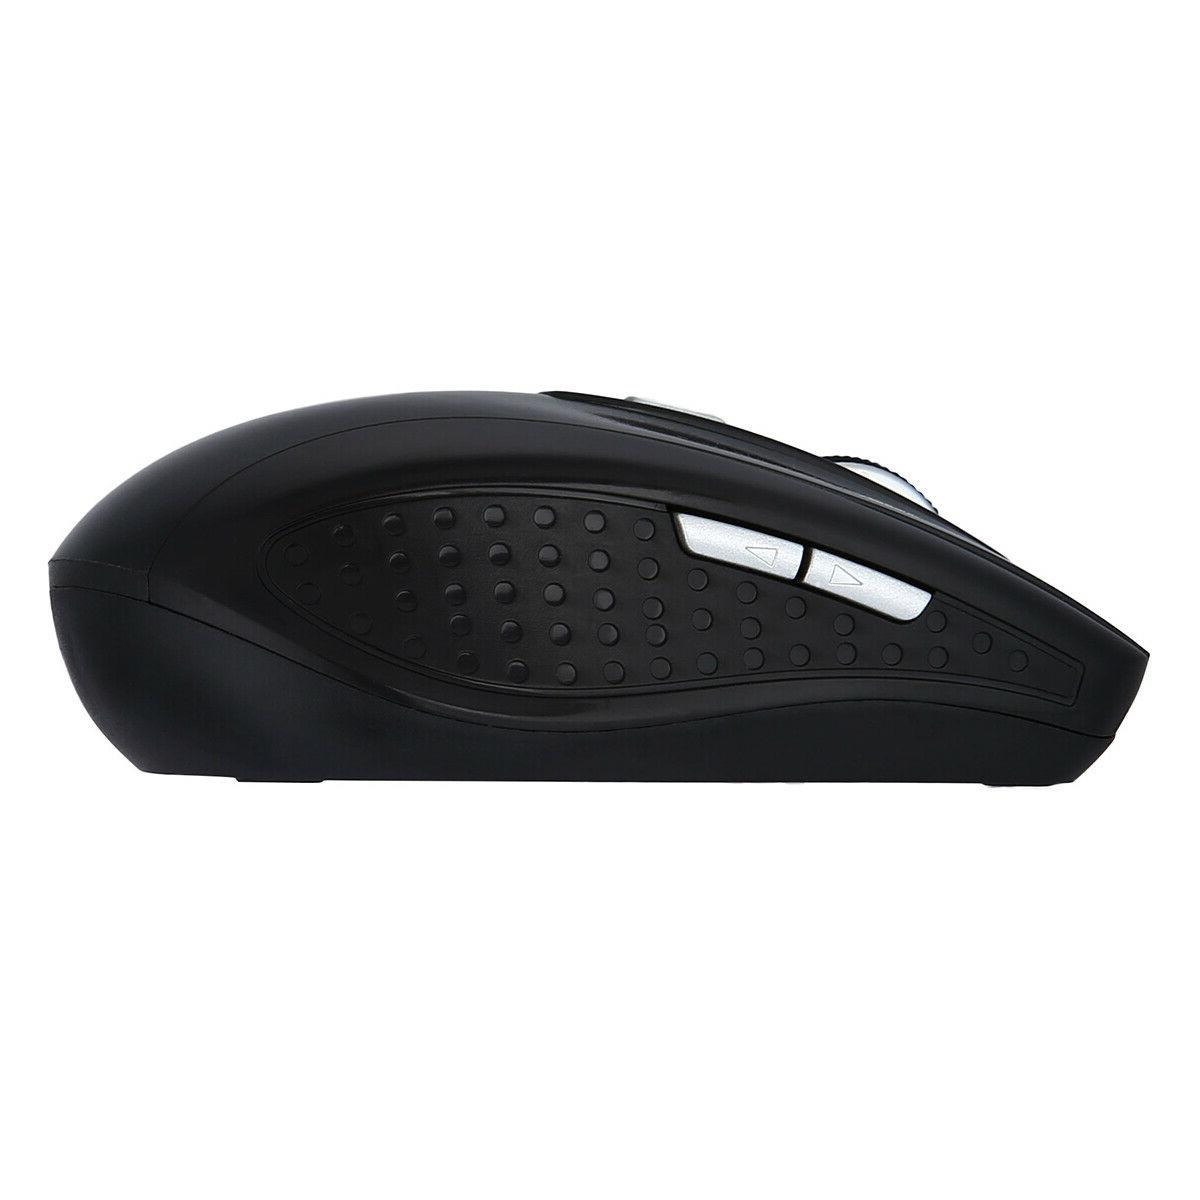 2.4GHz Wireless Gaming Mouse Mice USB Receiver for Laptop